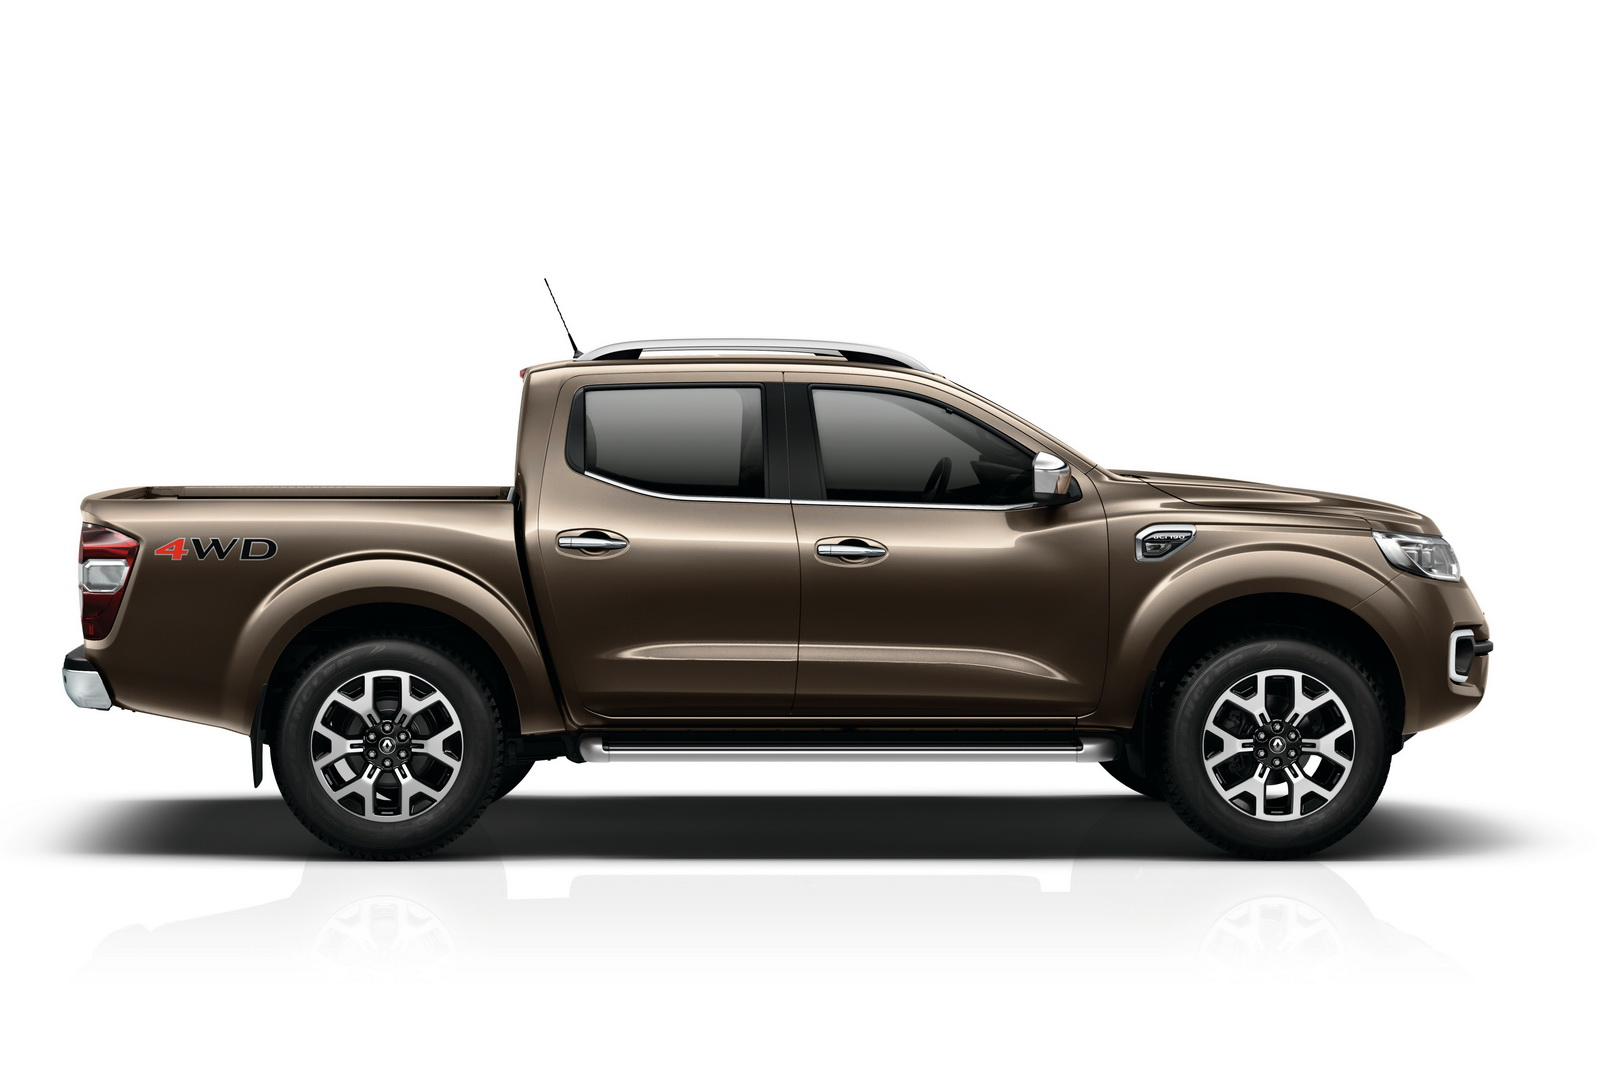 renault pulls the wraps off new alaskan pickup truck carscoops